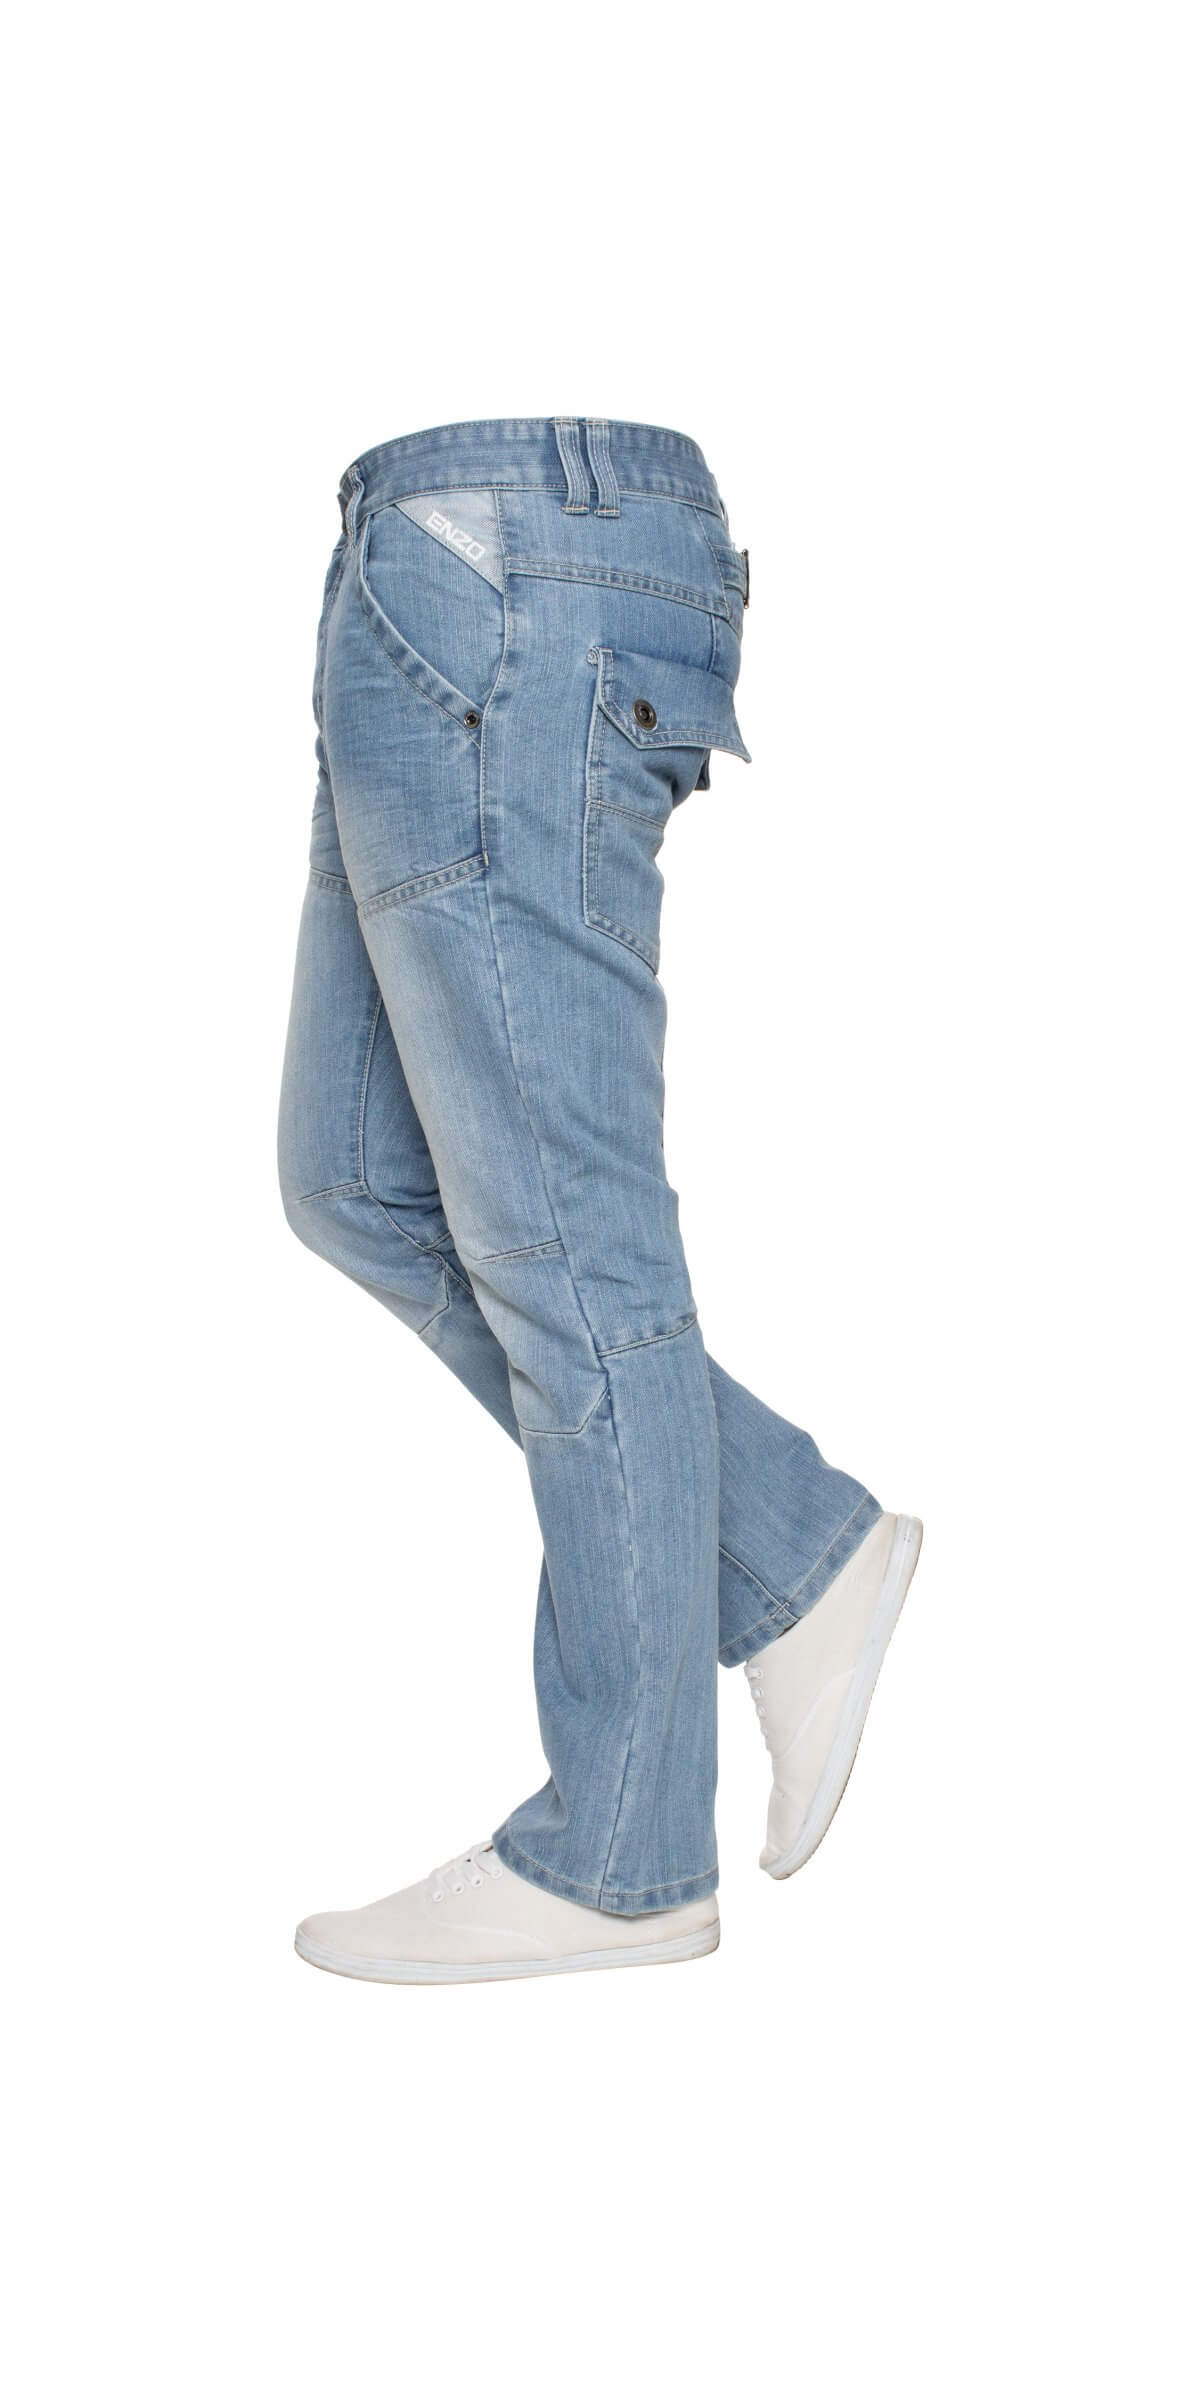 Mens Straight Fit Denim Jeans EZ243 Bleach | Enzo Designer Menswear